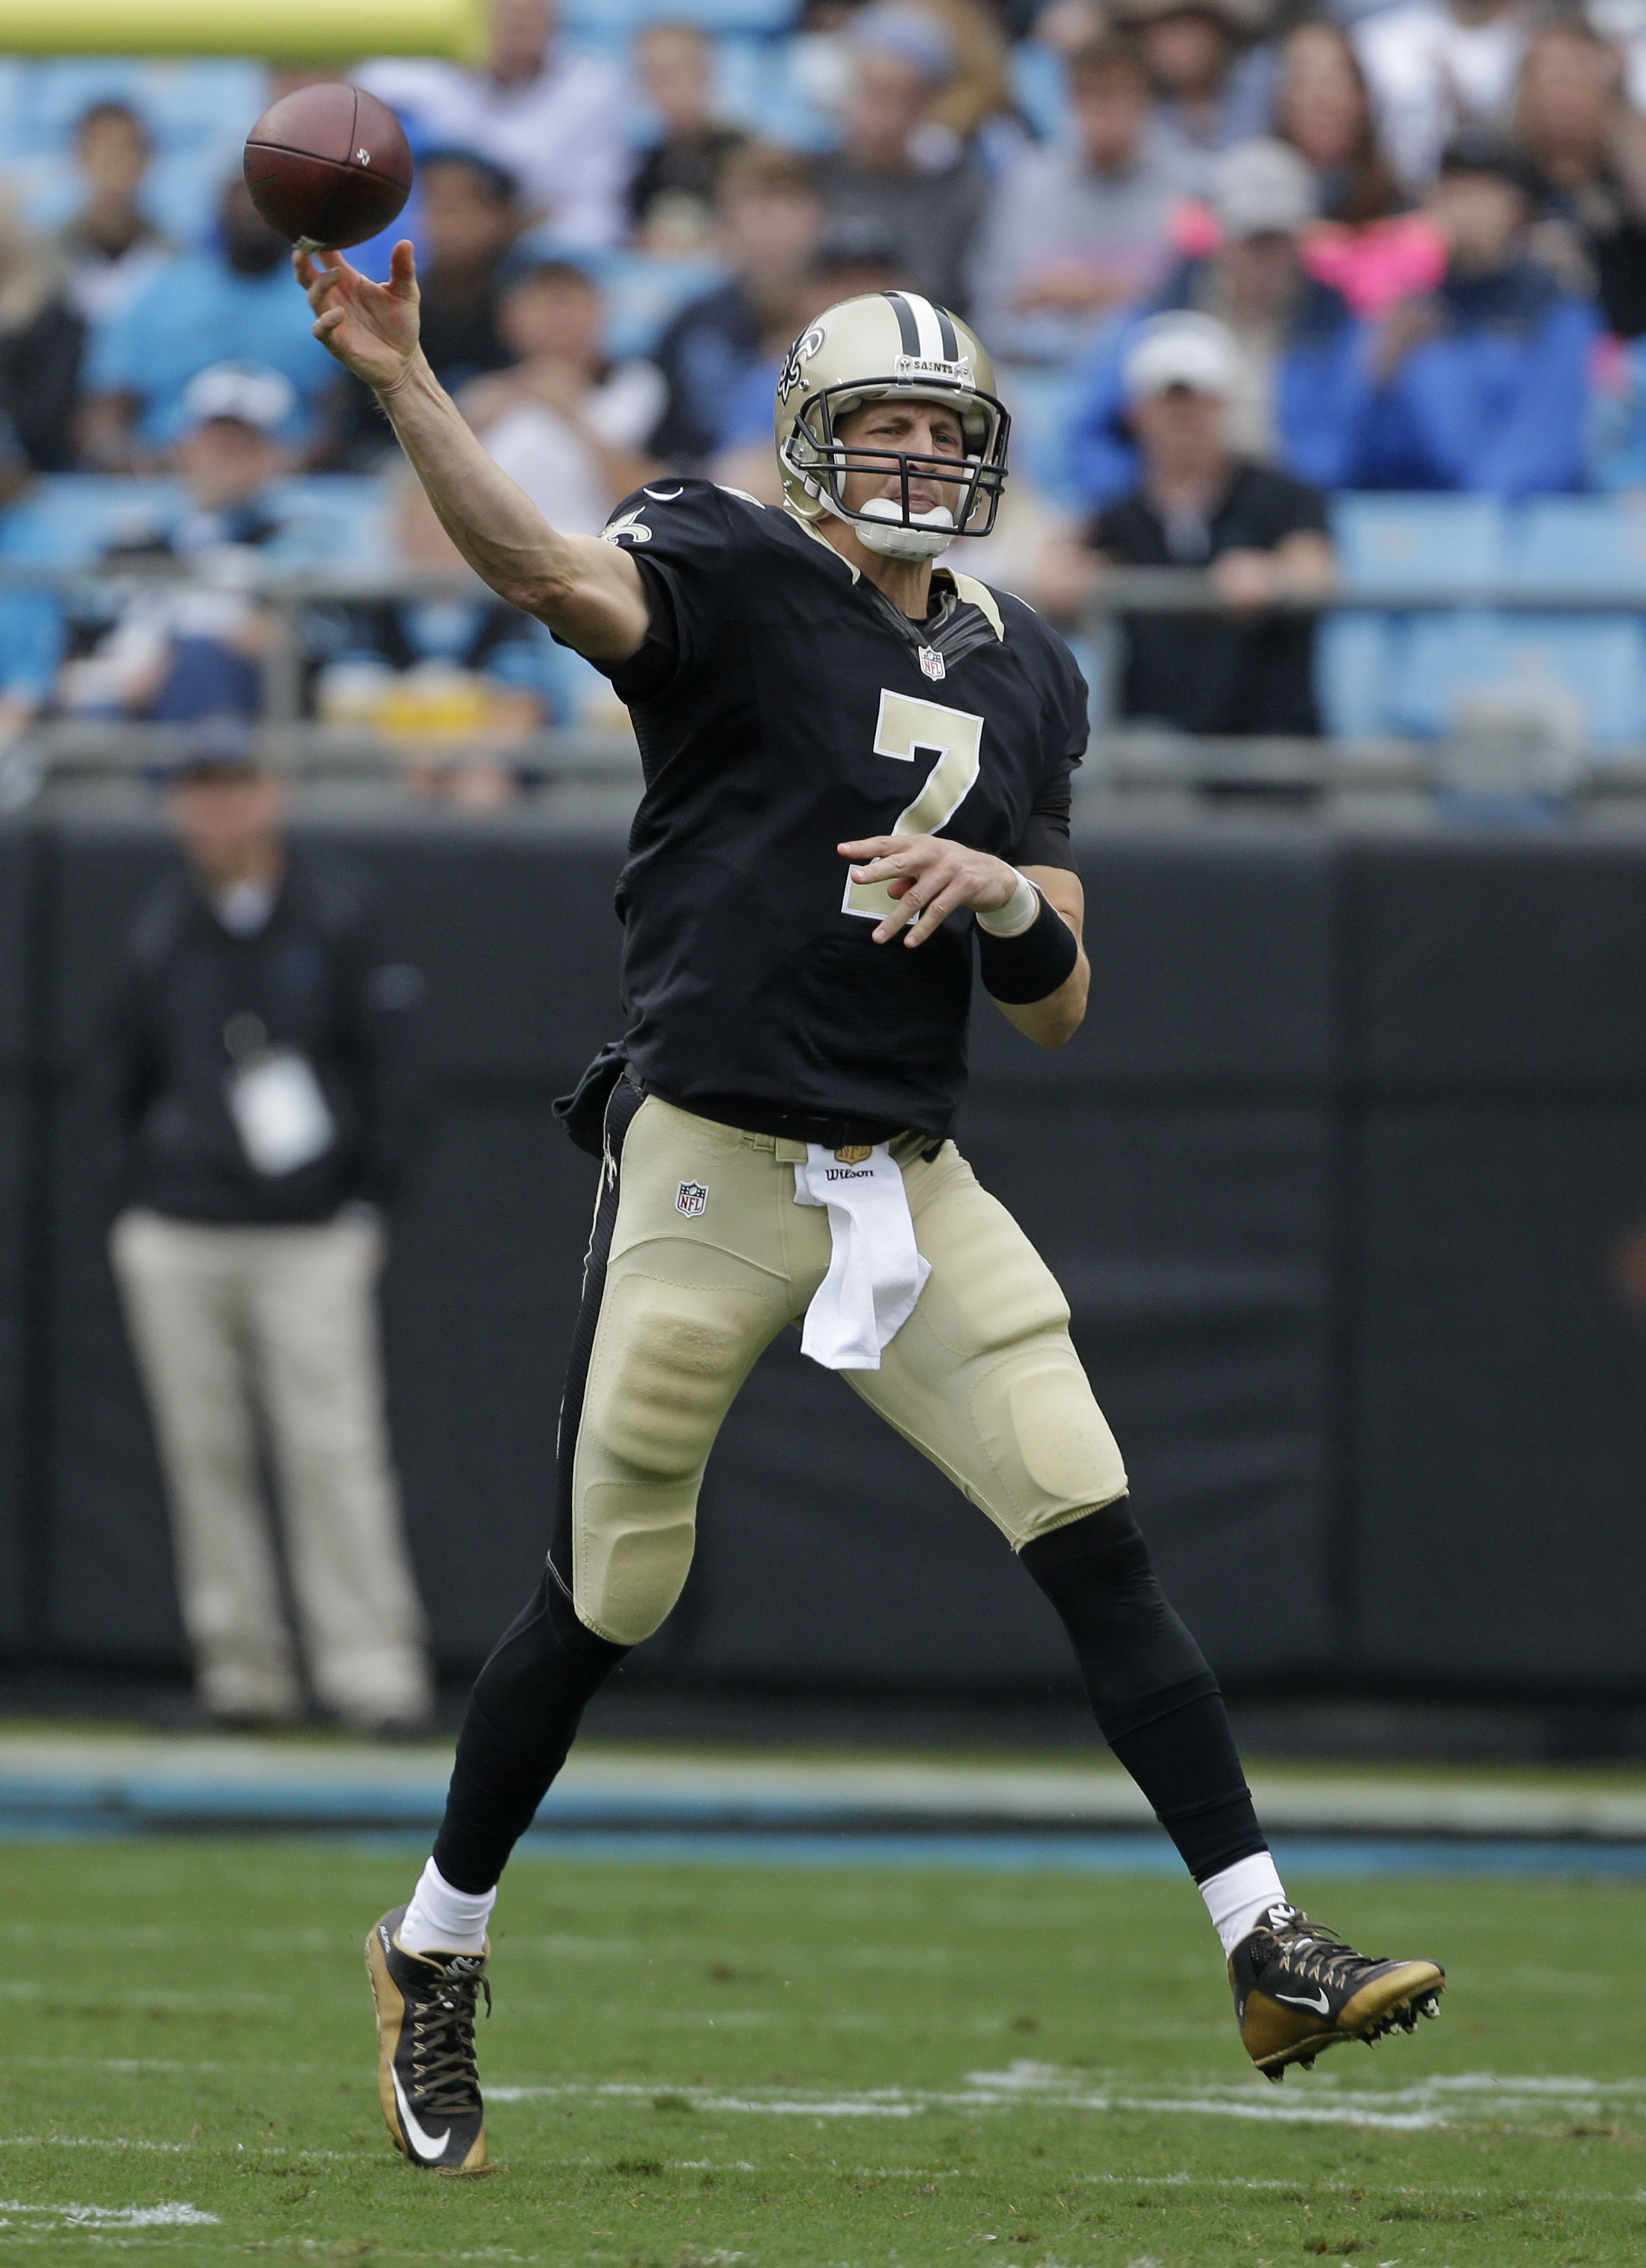 New Orleans Saints' Luke McCown (7) throws a pass against the Carolina Panthers in the first half of an NFL football game in Charlotte, N.C., Sunday, Sept. 27, 2015. (AP Photo/Bob Leverone)